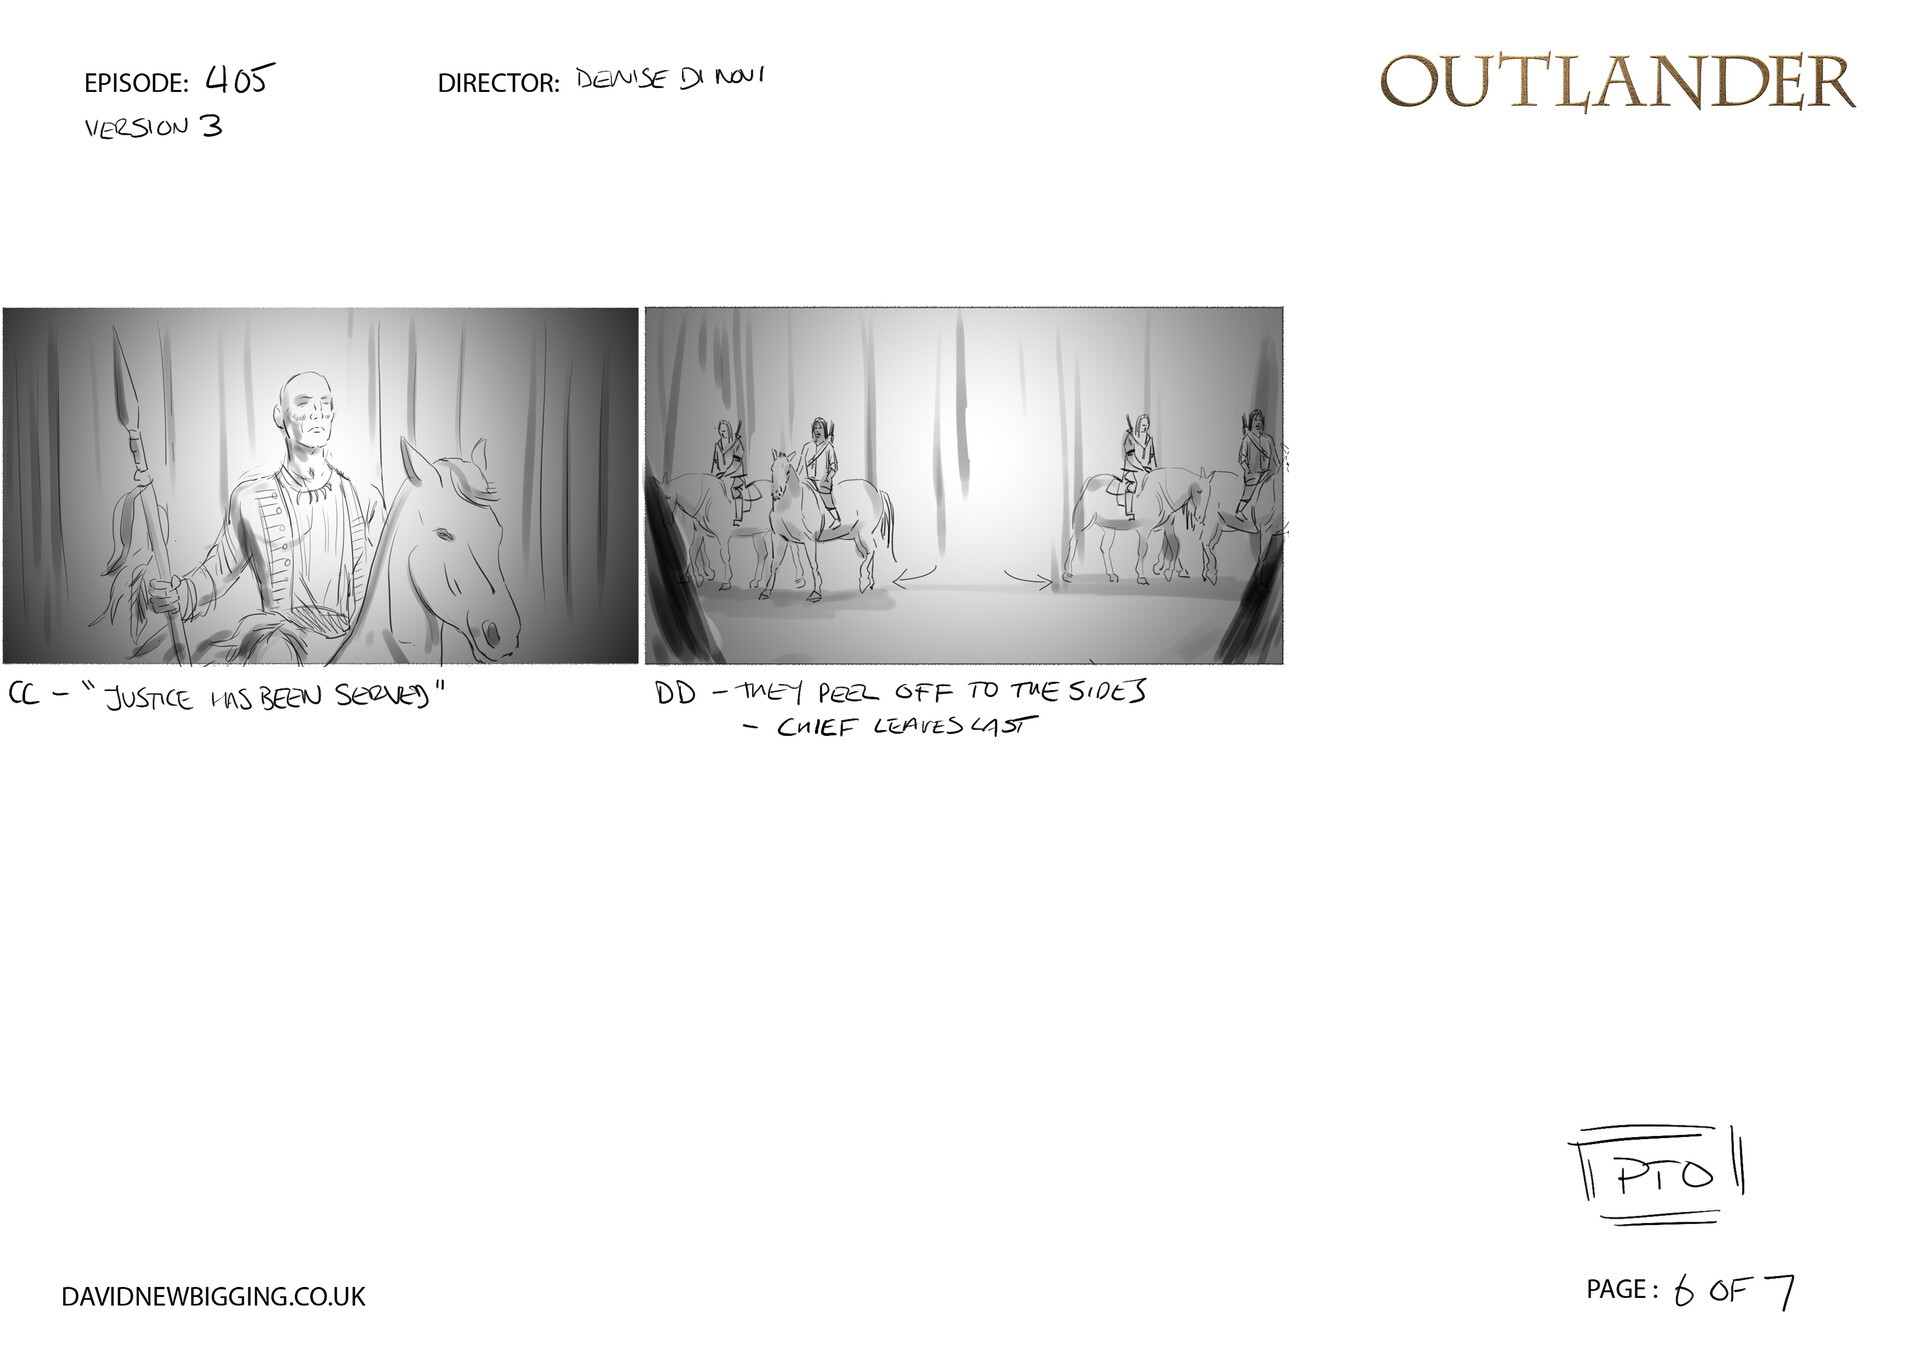 David newbigging outlander 405 cabin burning sequence storyboards version 3 6